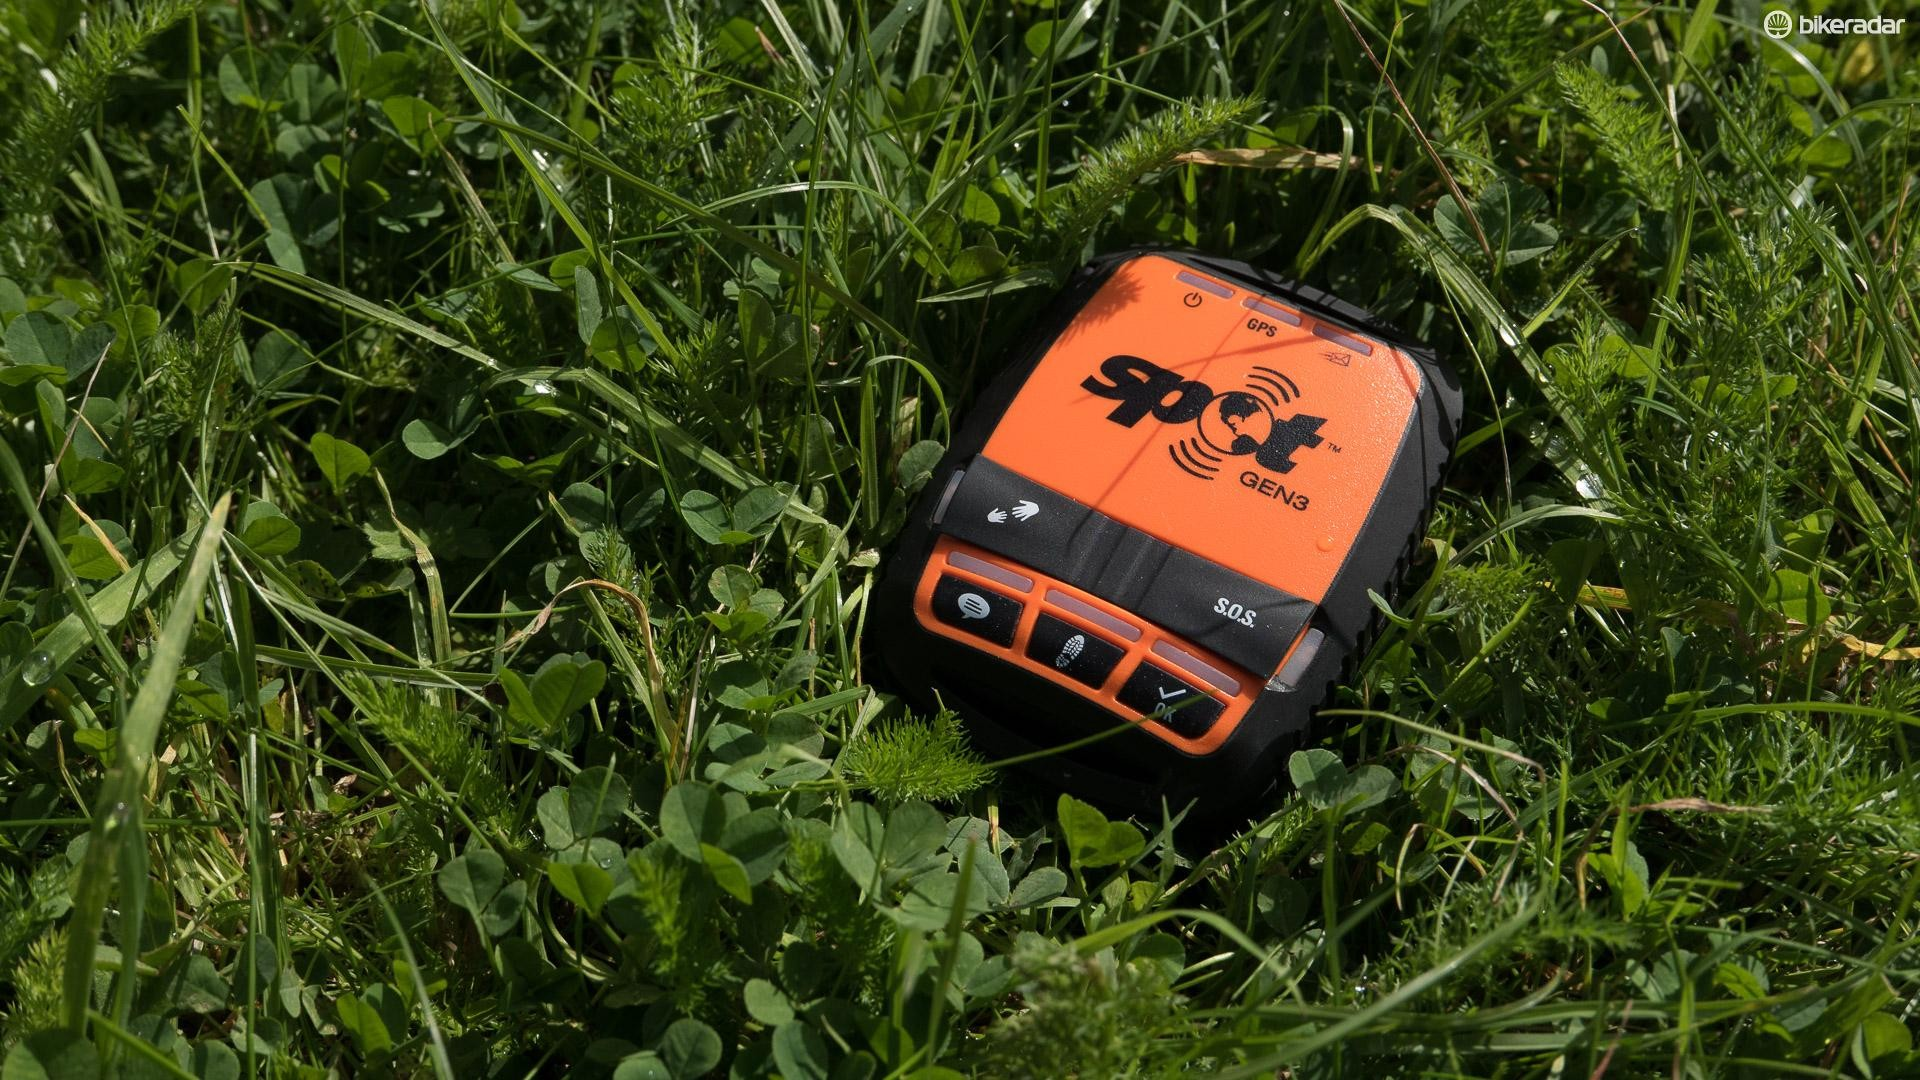 The SPOT GEN3 tracker allows you to share your real time location